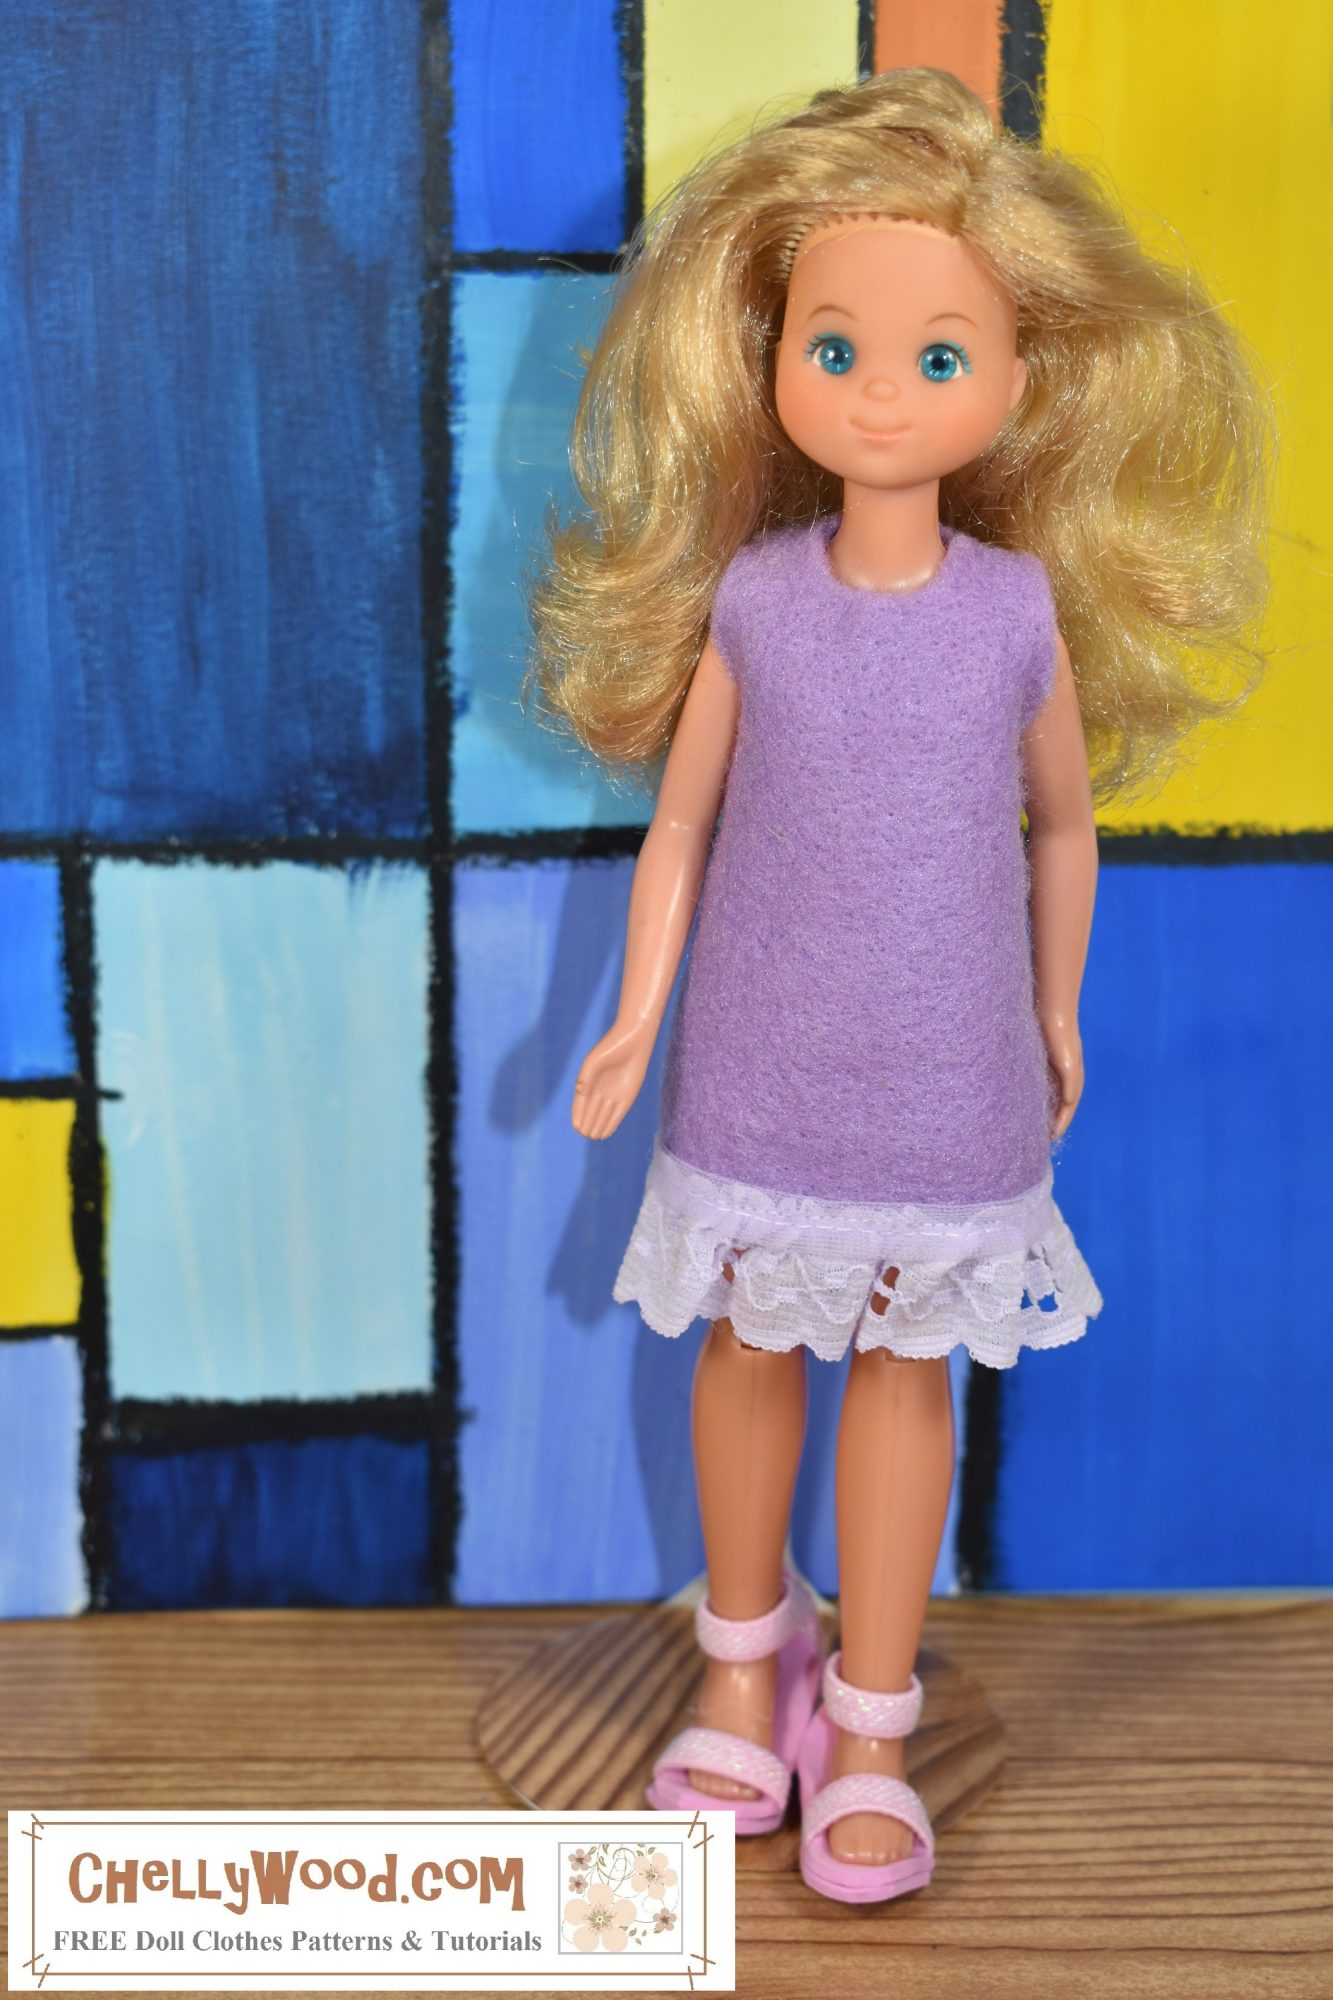 The image shows a vintage Sunshine Family doll wearing a purple felt dress with eyelet lace trim. Please go to ChellyWood.com for the free printable PDF sewing pattern and easy-to-sew tutorial video that will show you how to make this dress (great for beginners and kids learning to sew)! Please click on the link in the caption to navigate to the right page for this pattern and tutorial.